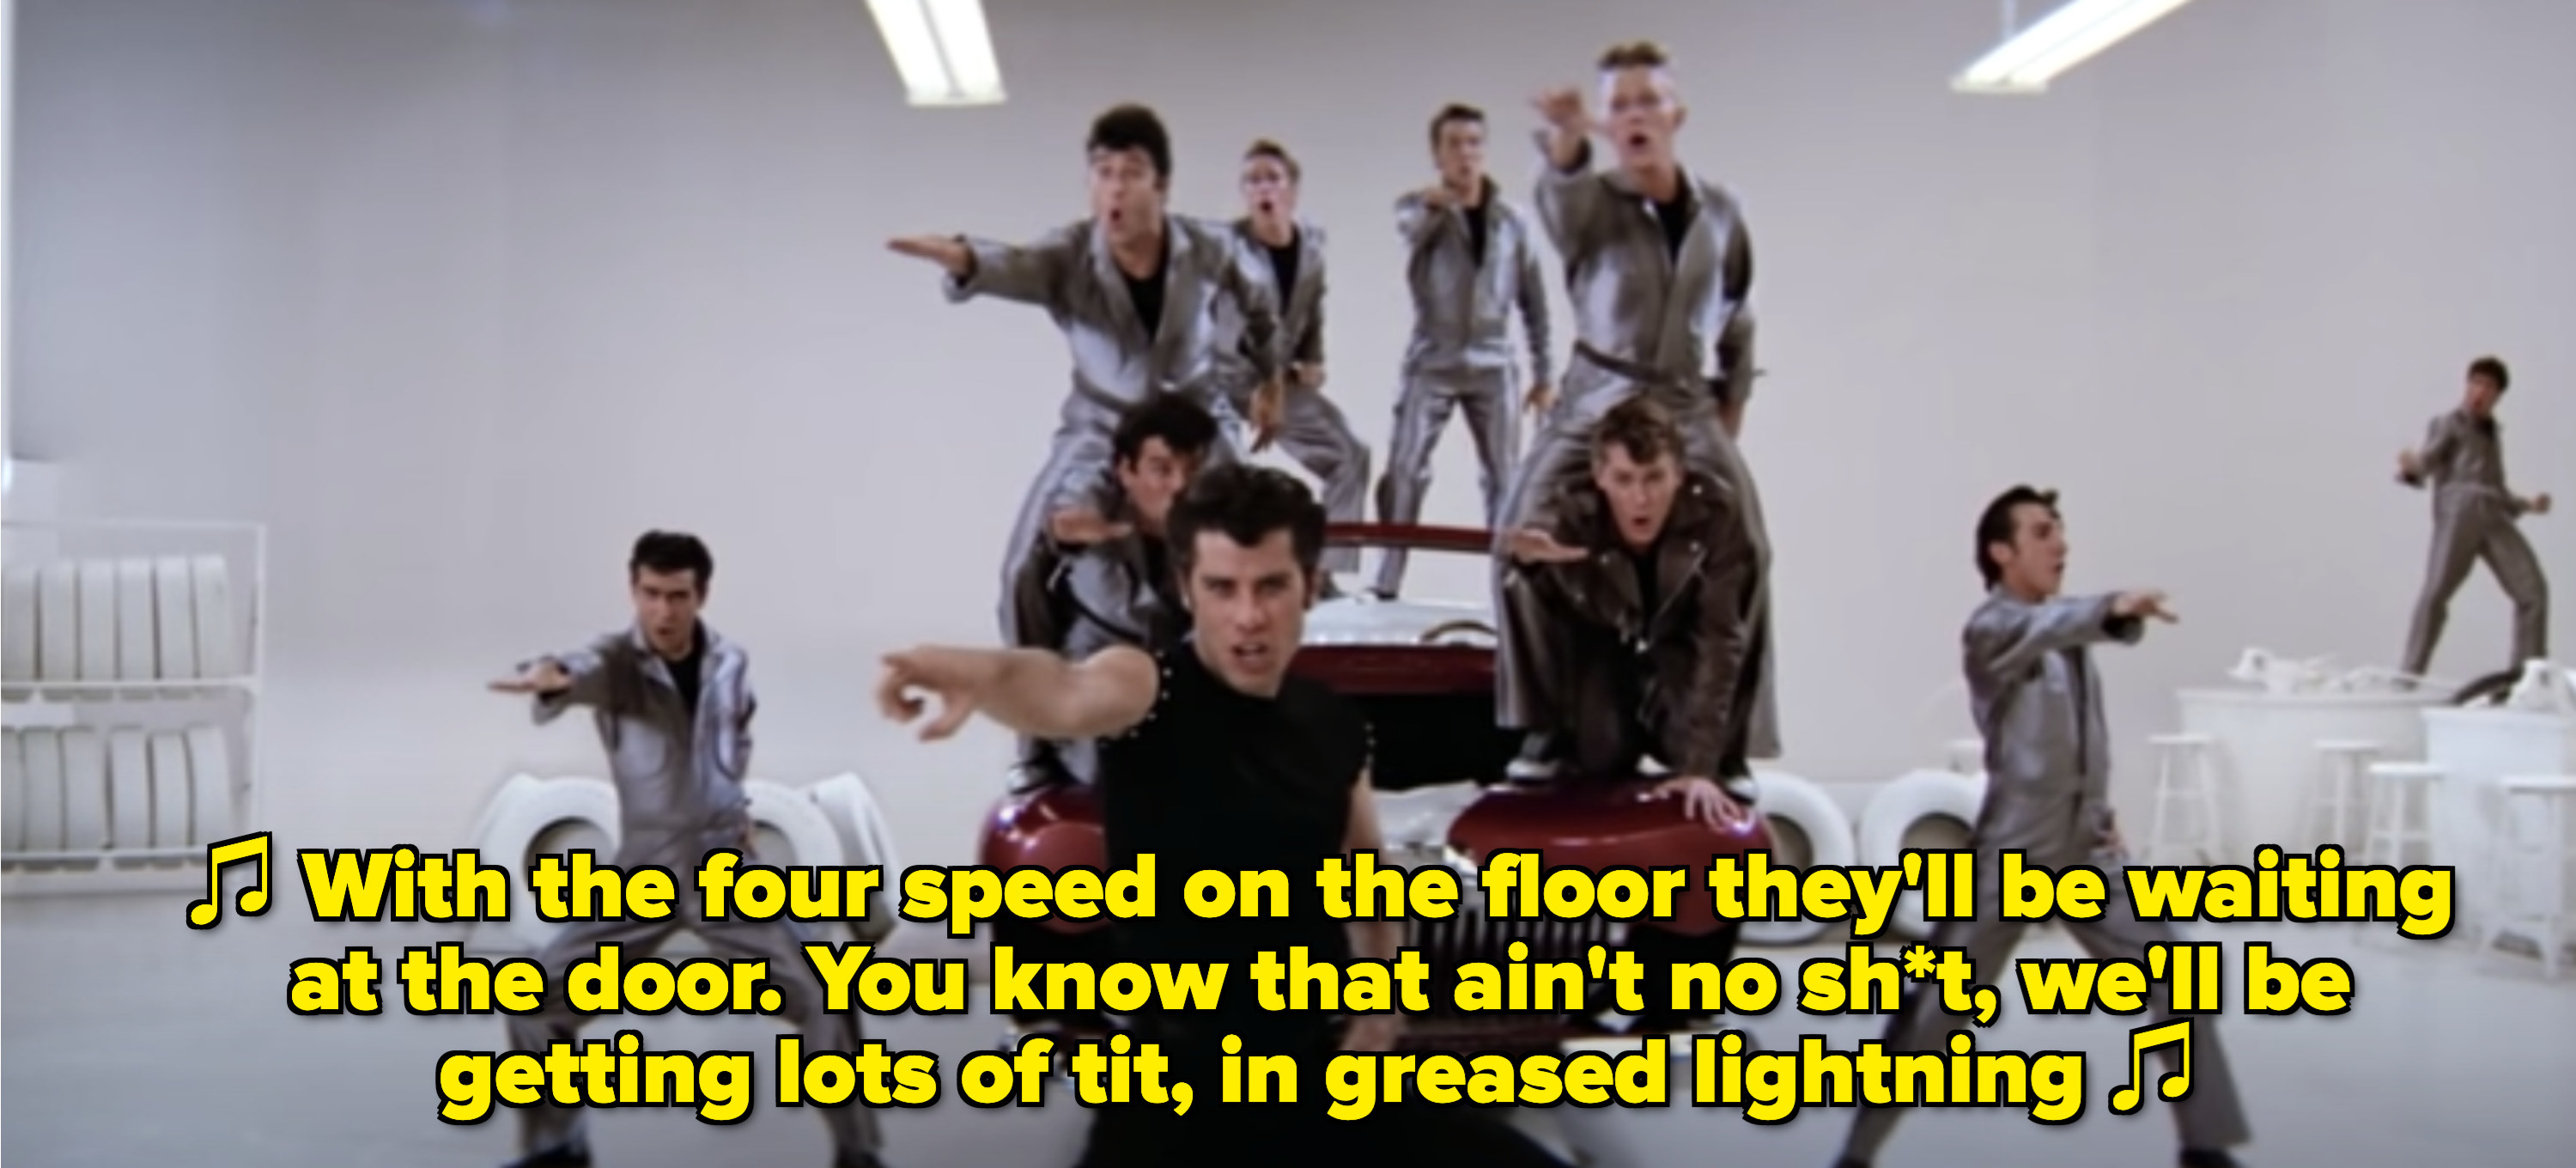 "Danny singing: ""With the four speed on the floor they'll be waiting at the door. You know that ain't no sh*t, we'll be getting lots of tit, in greased lightning"""